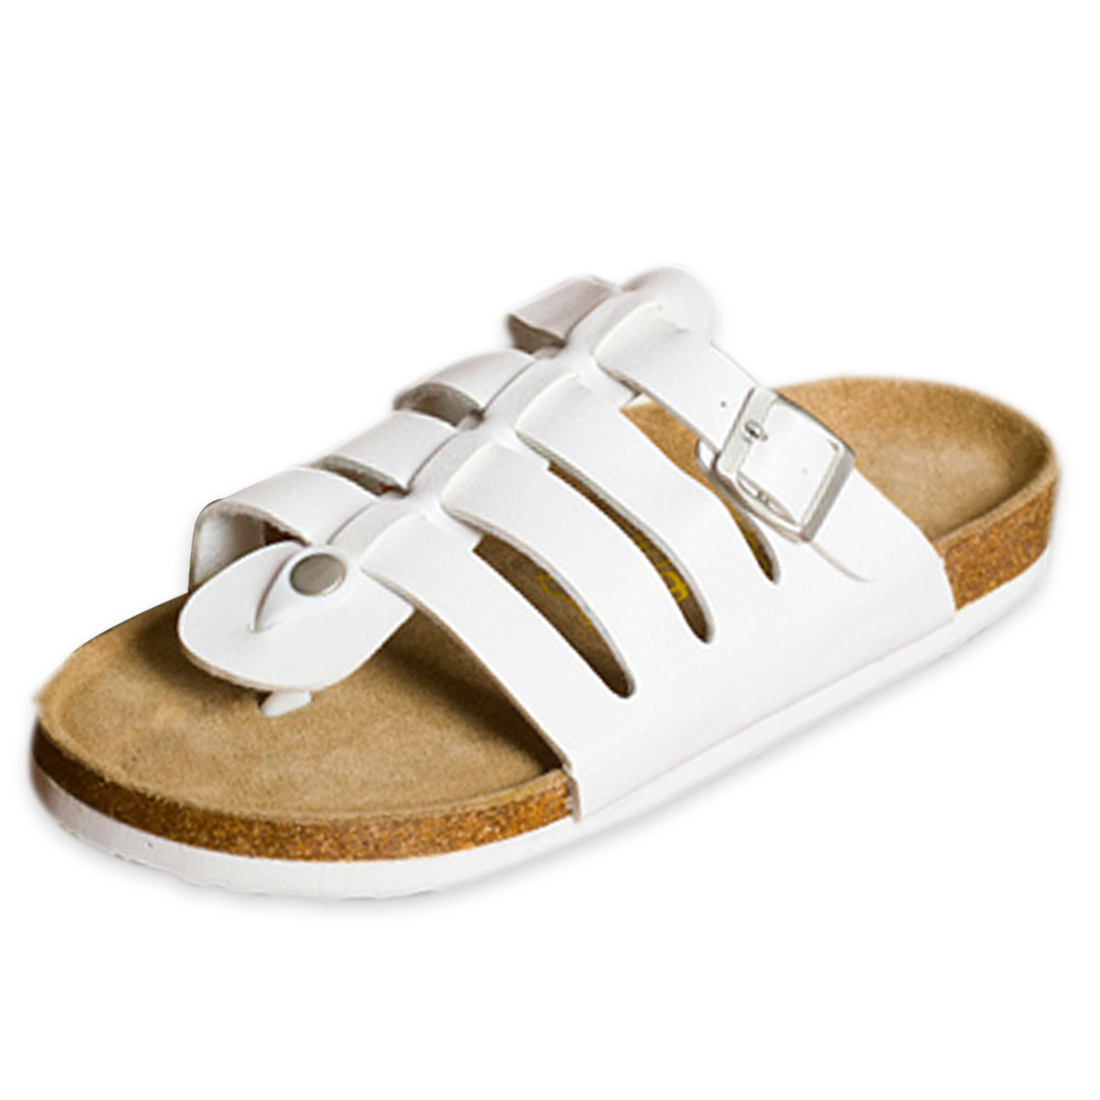 Men Casual Wear Functional Buckle Roman Flip Flops White US 8